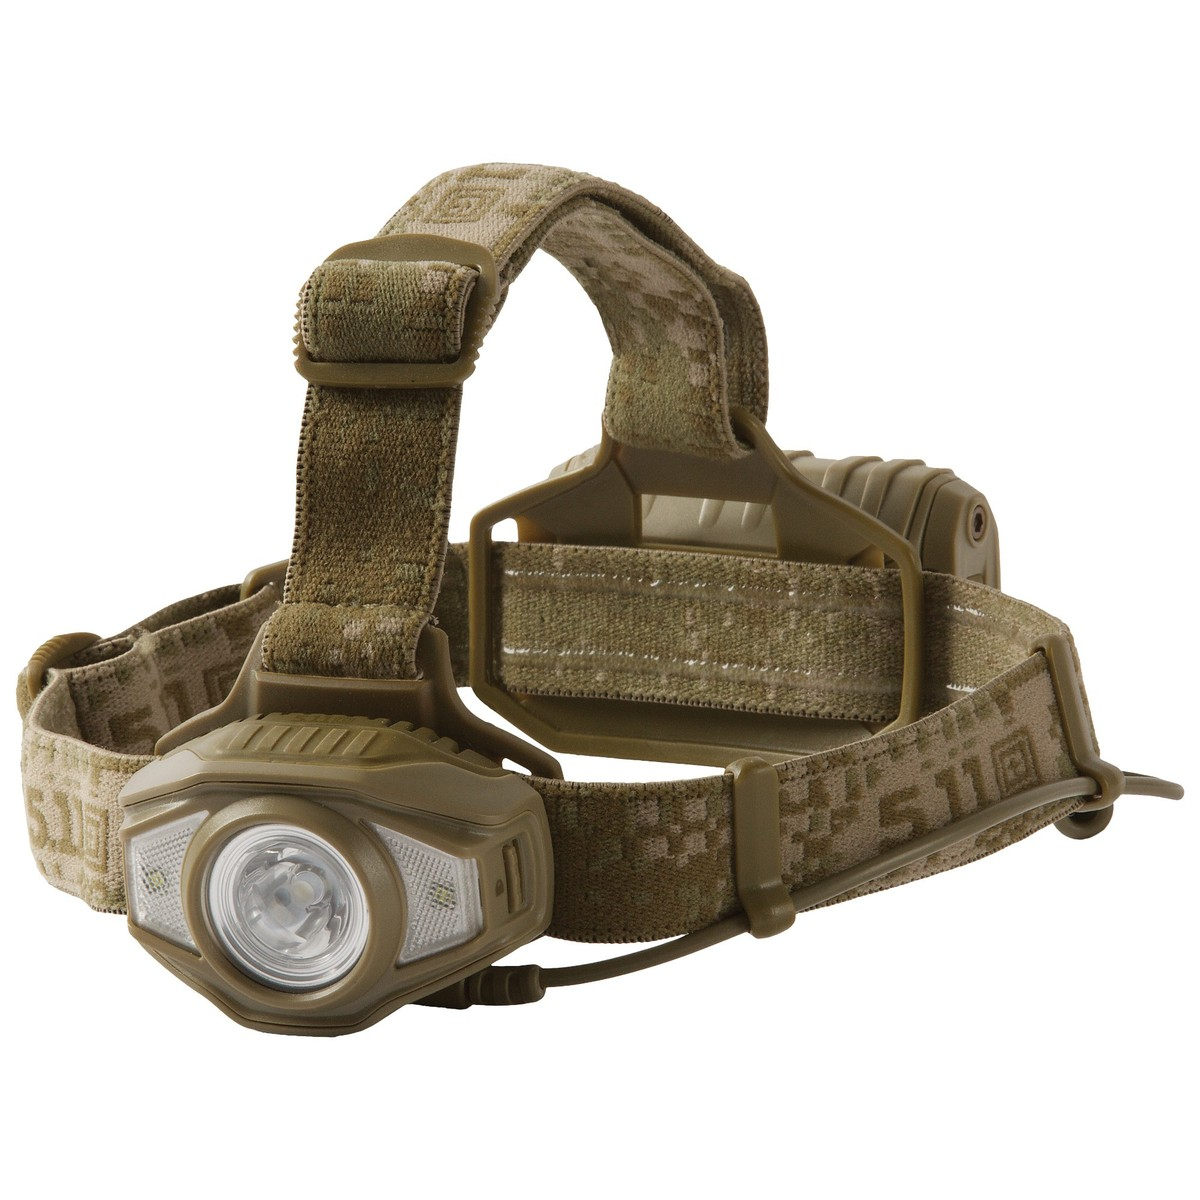 5.11 Tactical S+R H2 Headlamp One Size Style 53245 Black